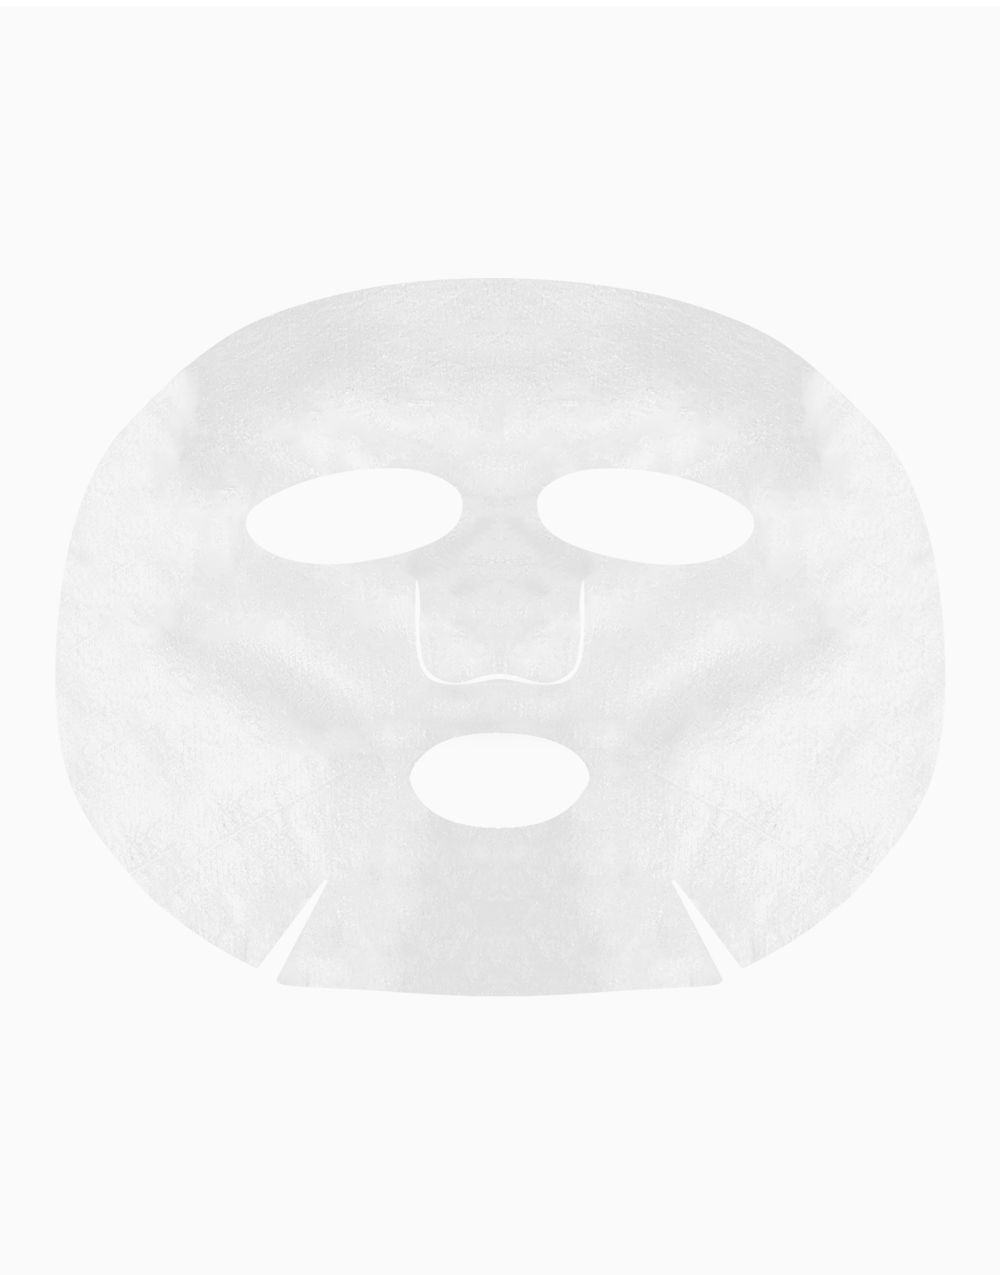 Pure Skin Pearl Essence Mask Sheet by Esfolio